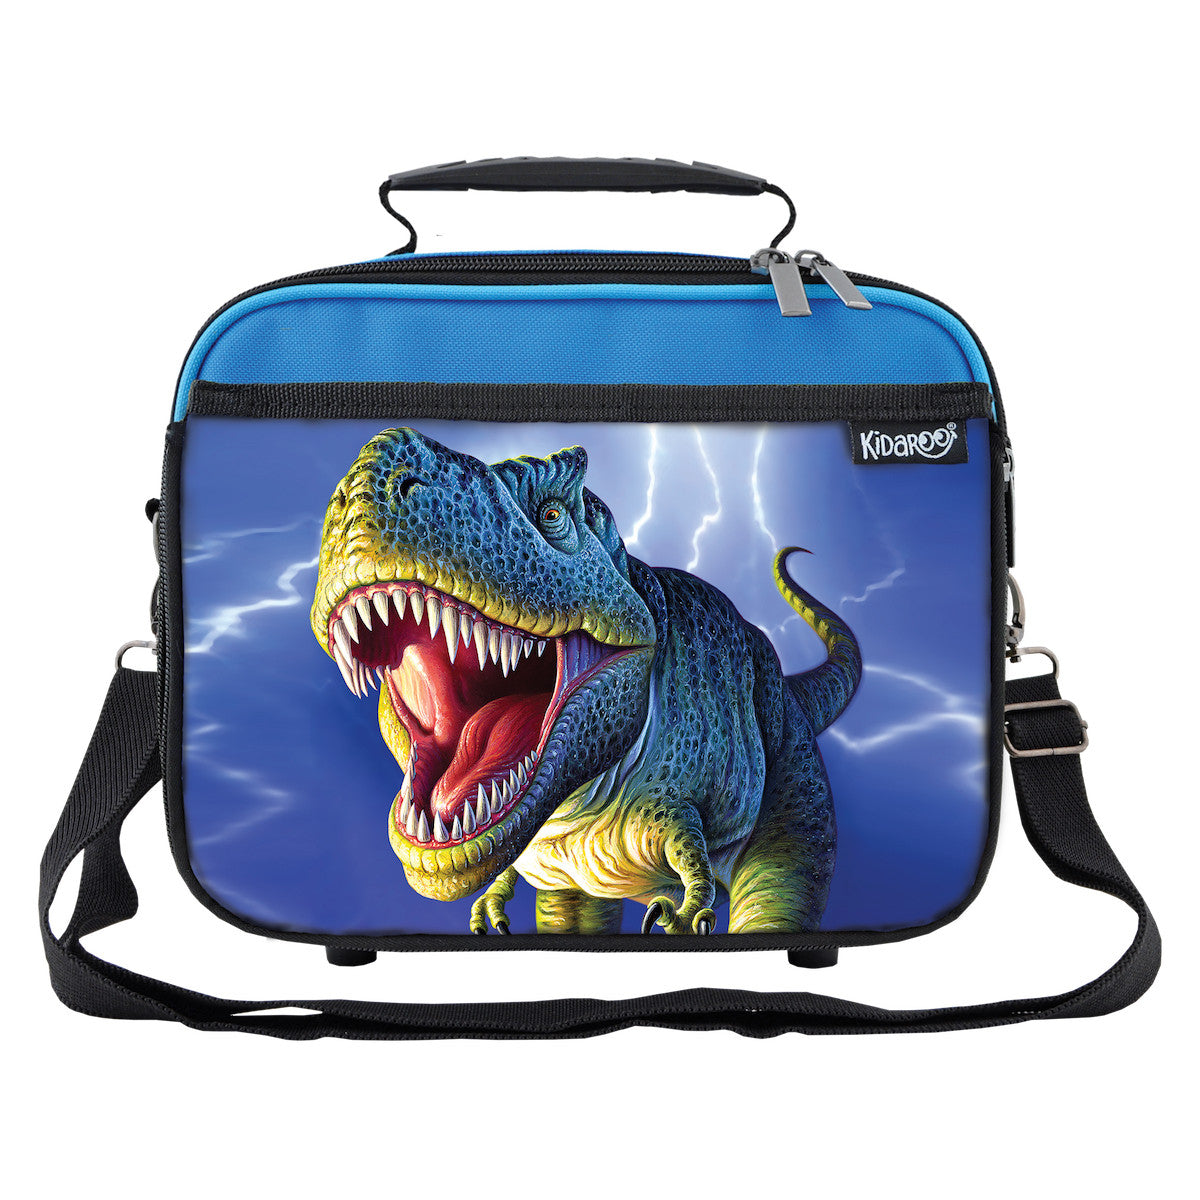 Kidaroo Blue Lightning Rex Dinosaur School Lunchbox Tote for Boys, Girls